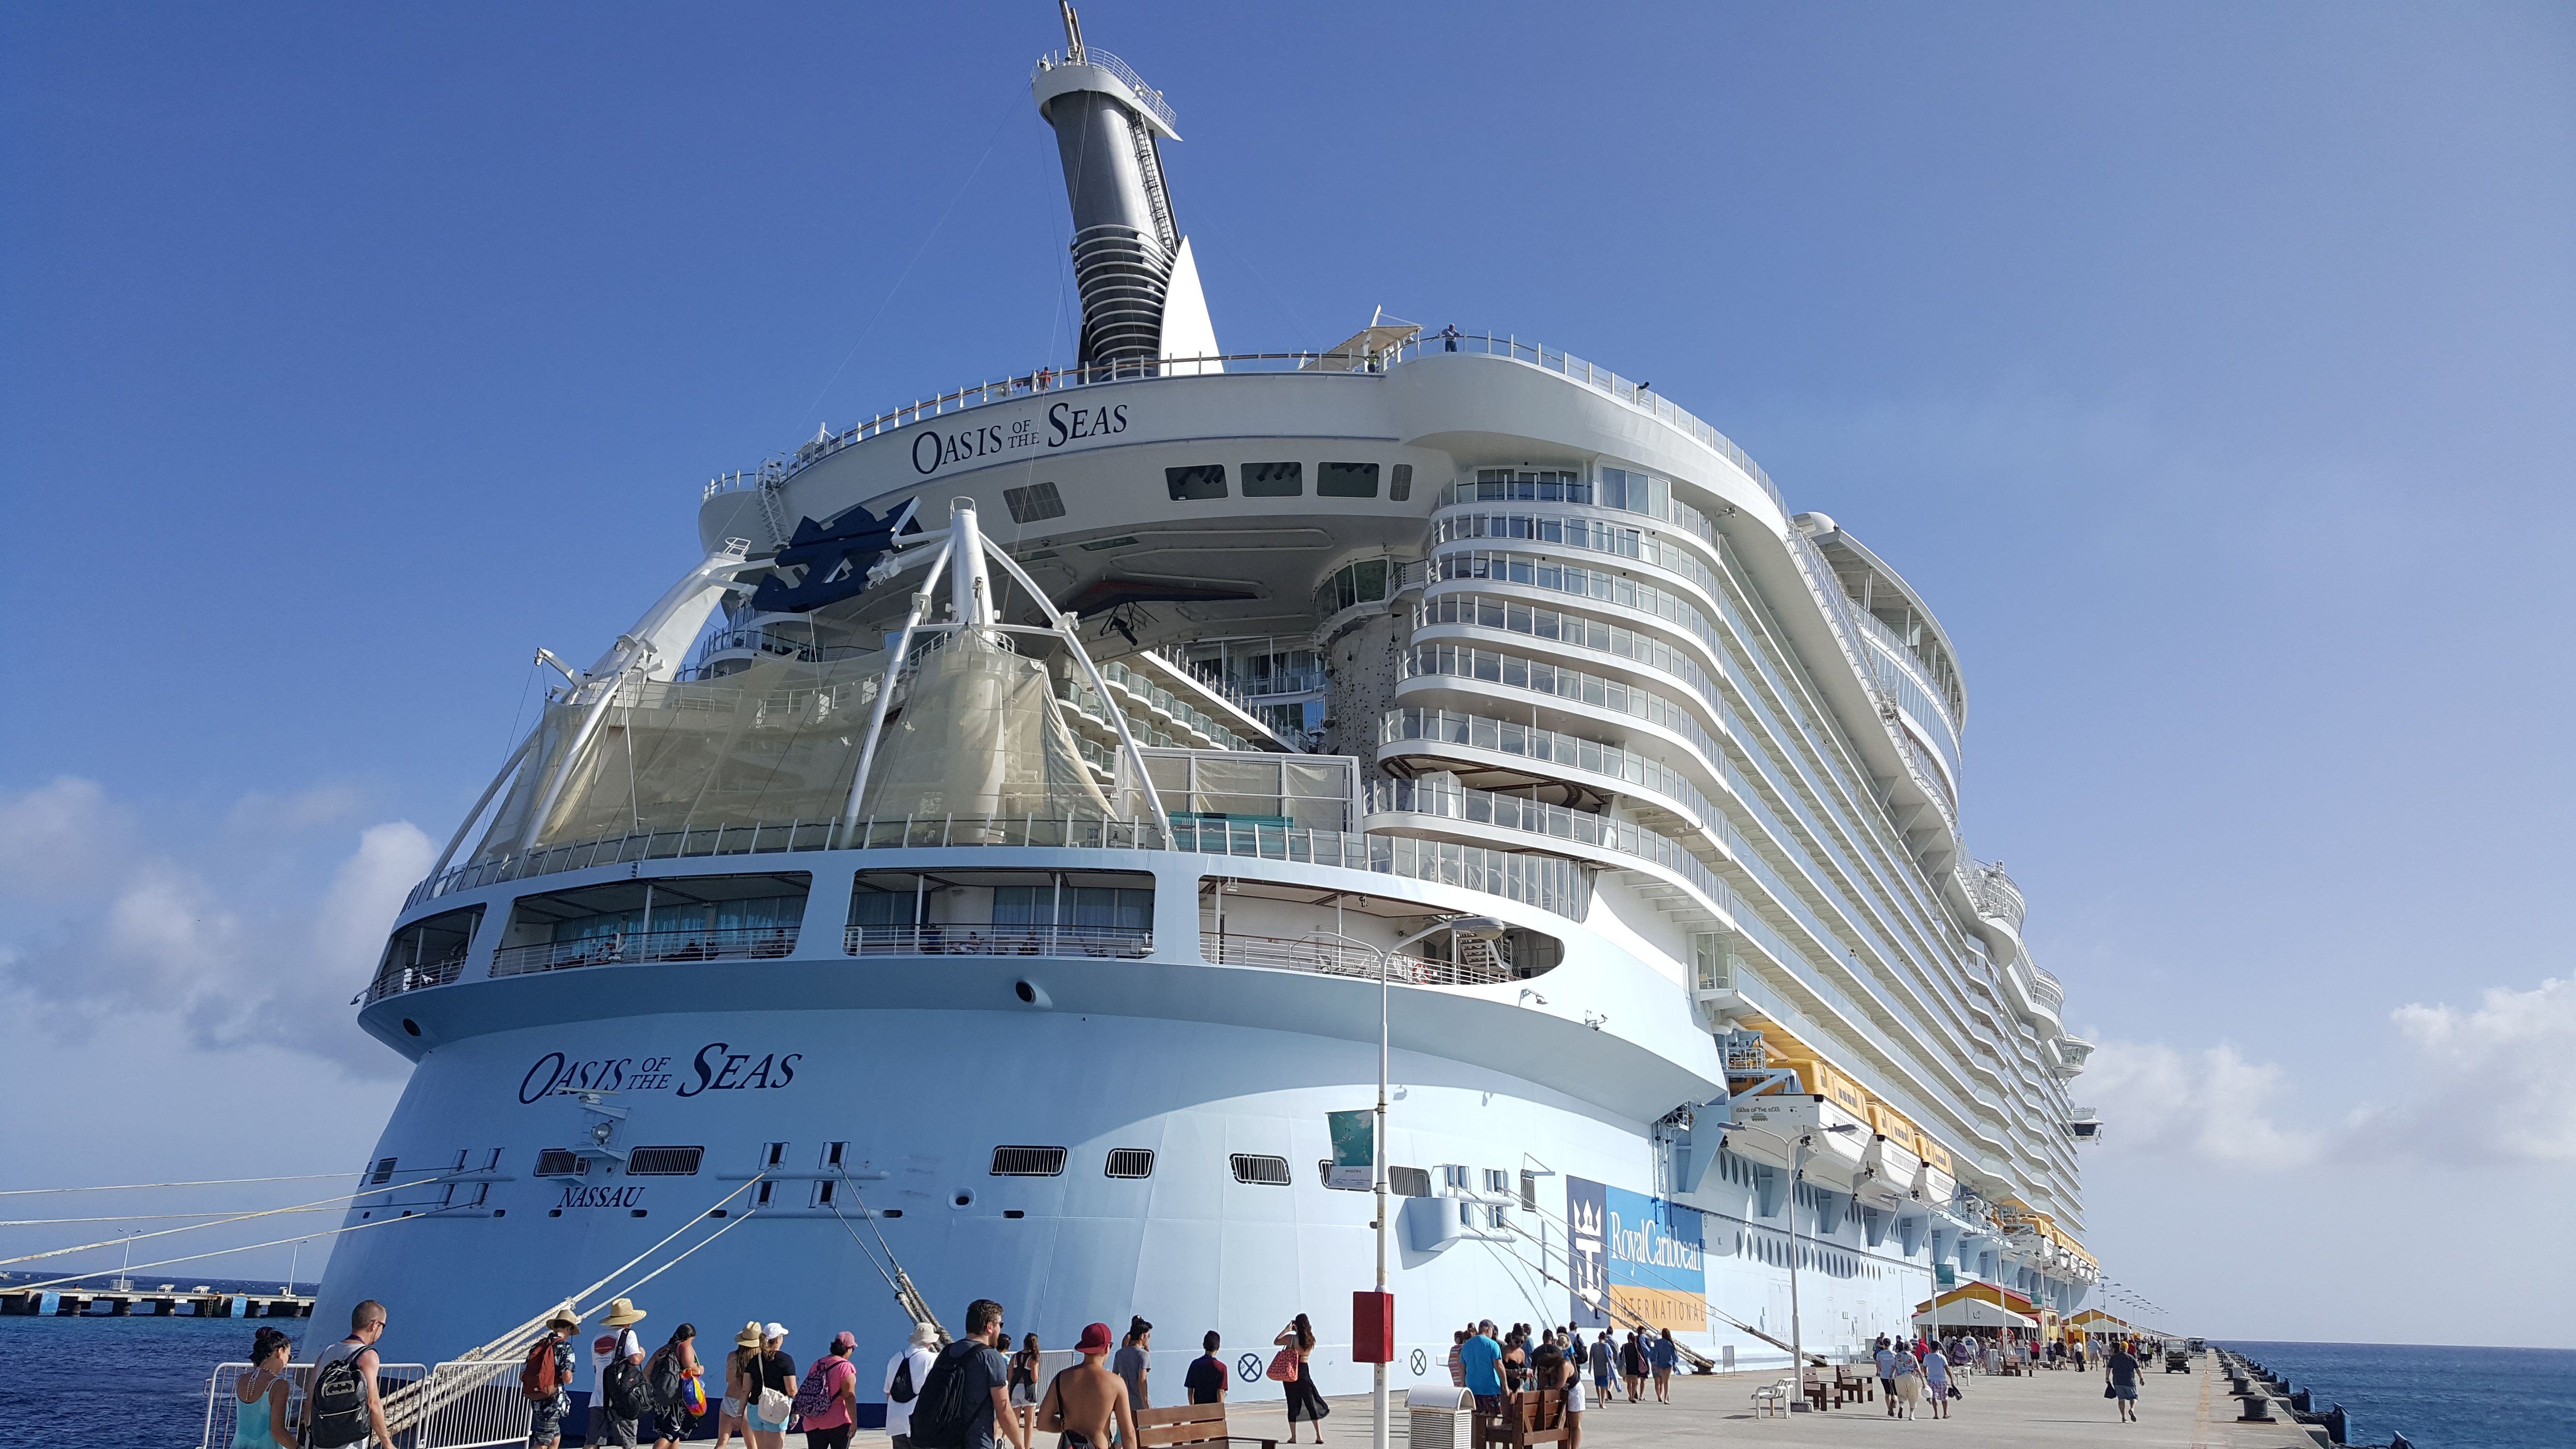 The Royal Caribbeans Oasis Of The Seas The Largest Cruise Ship - Cruise ships out of charleston